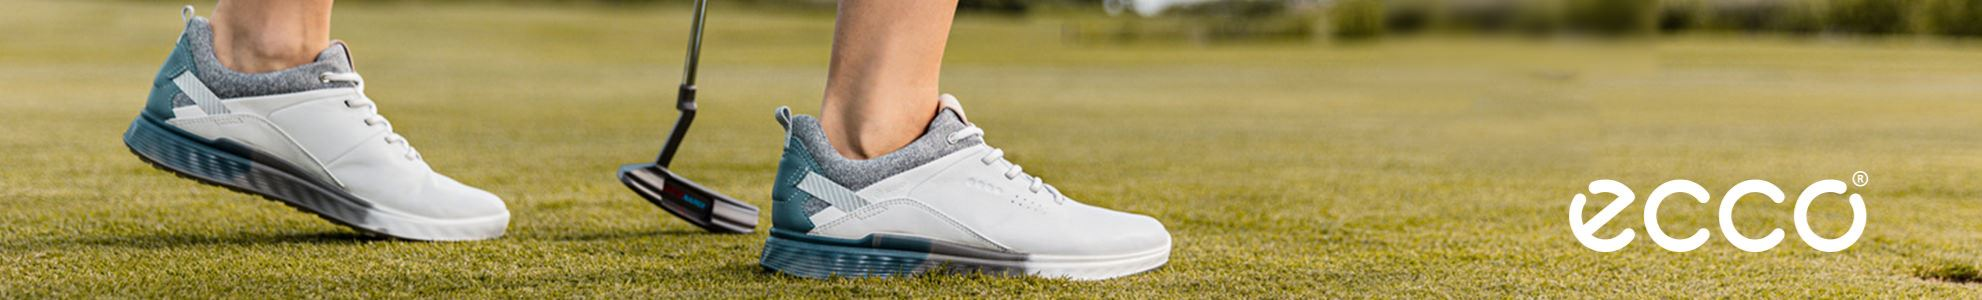 Ecco Golf Shoes - Men's and Ladies Ecco Golf Shoe Collection 2021